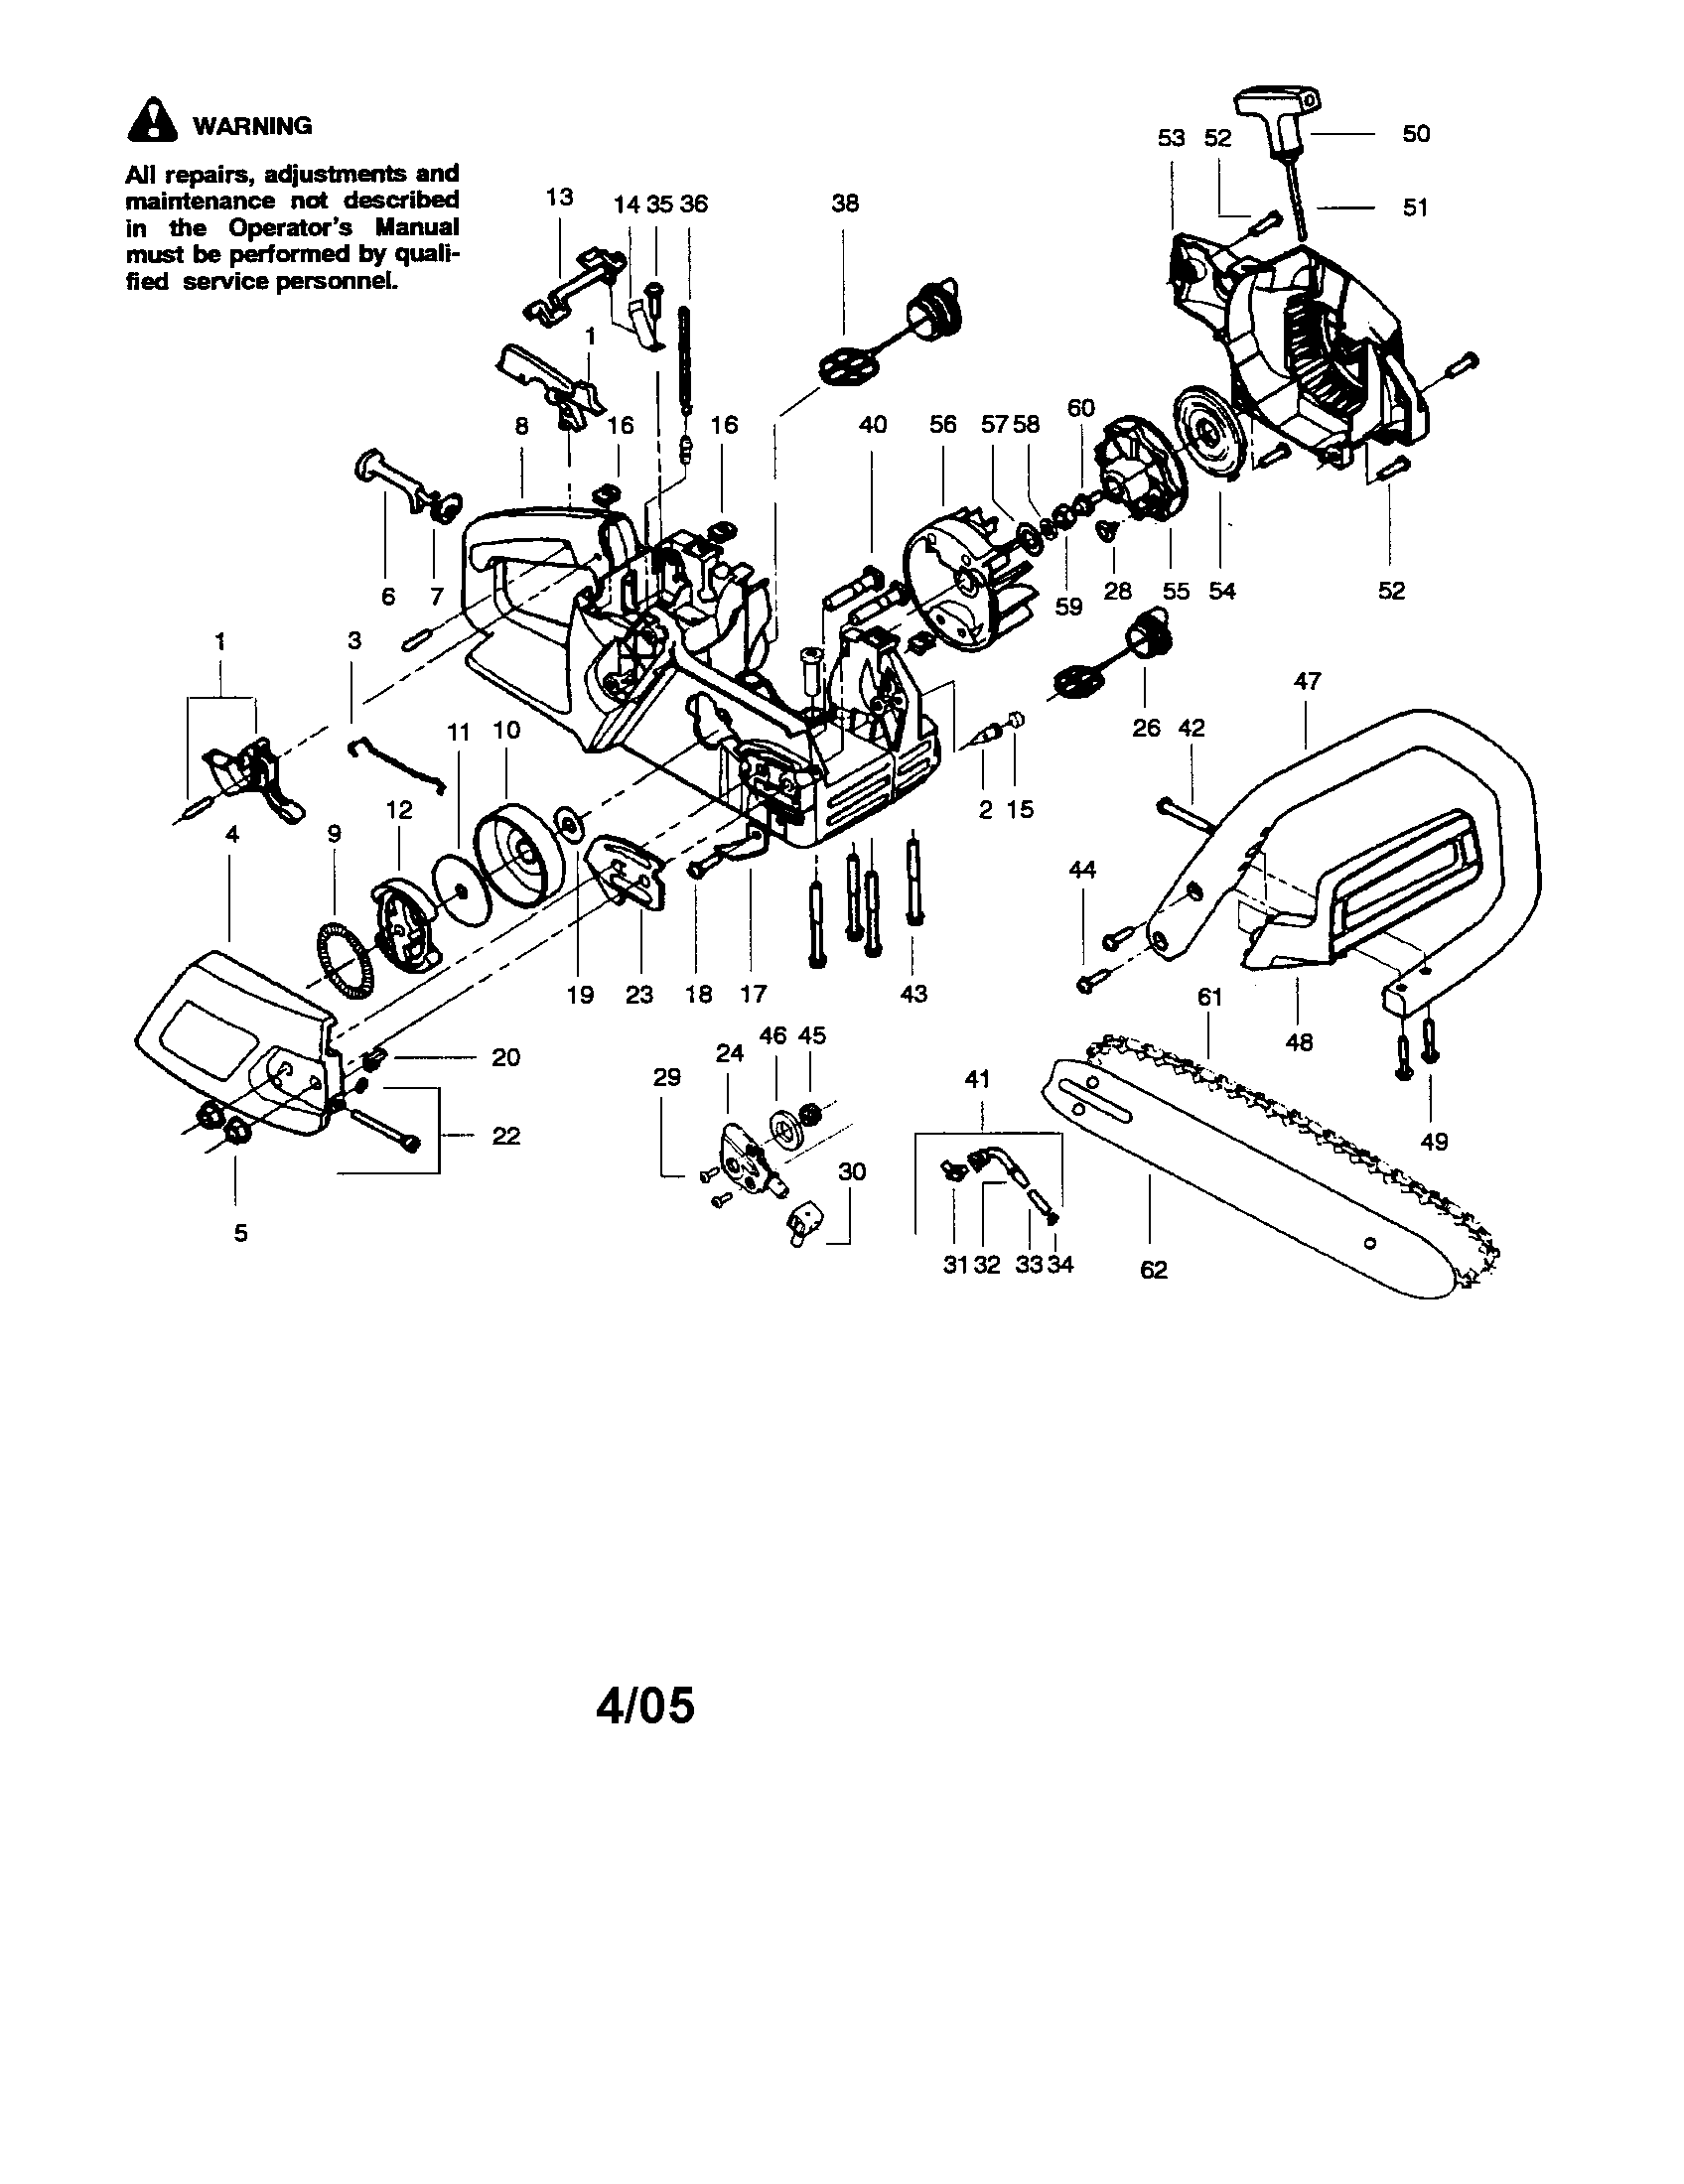 craftsman chainsaw carburetor diagram wiring of ups chain saw 530069703 parts model